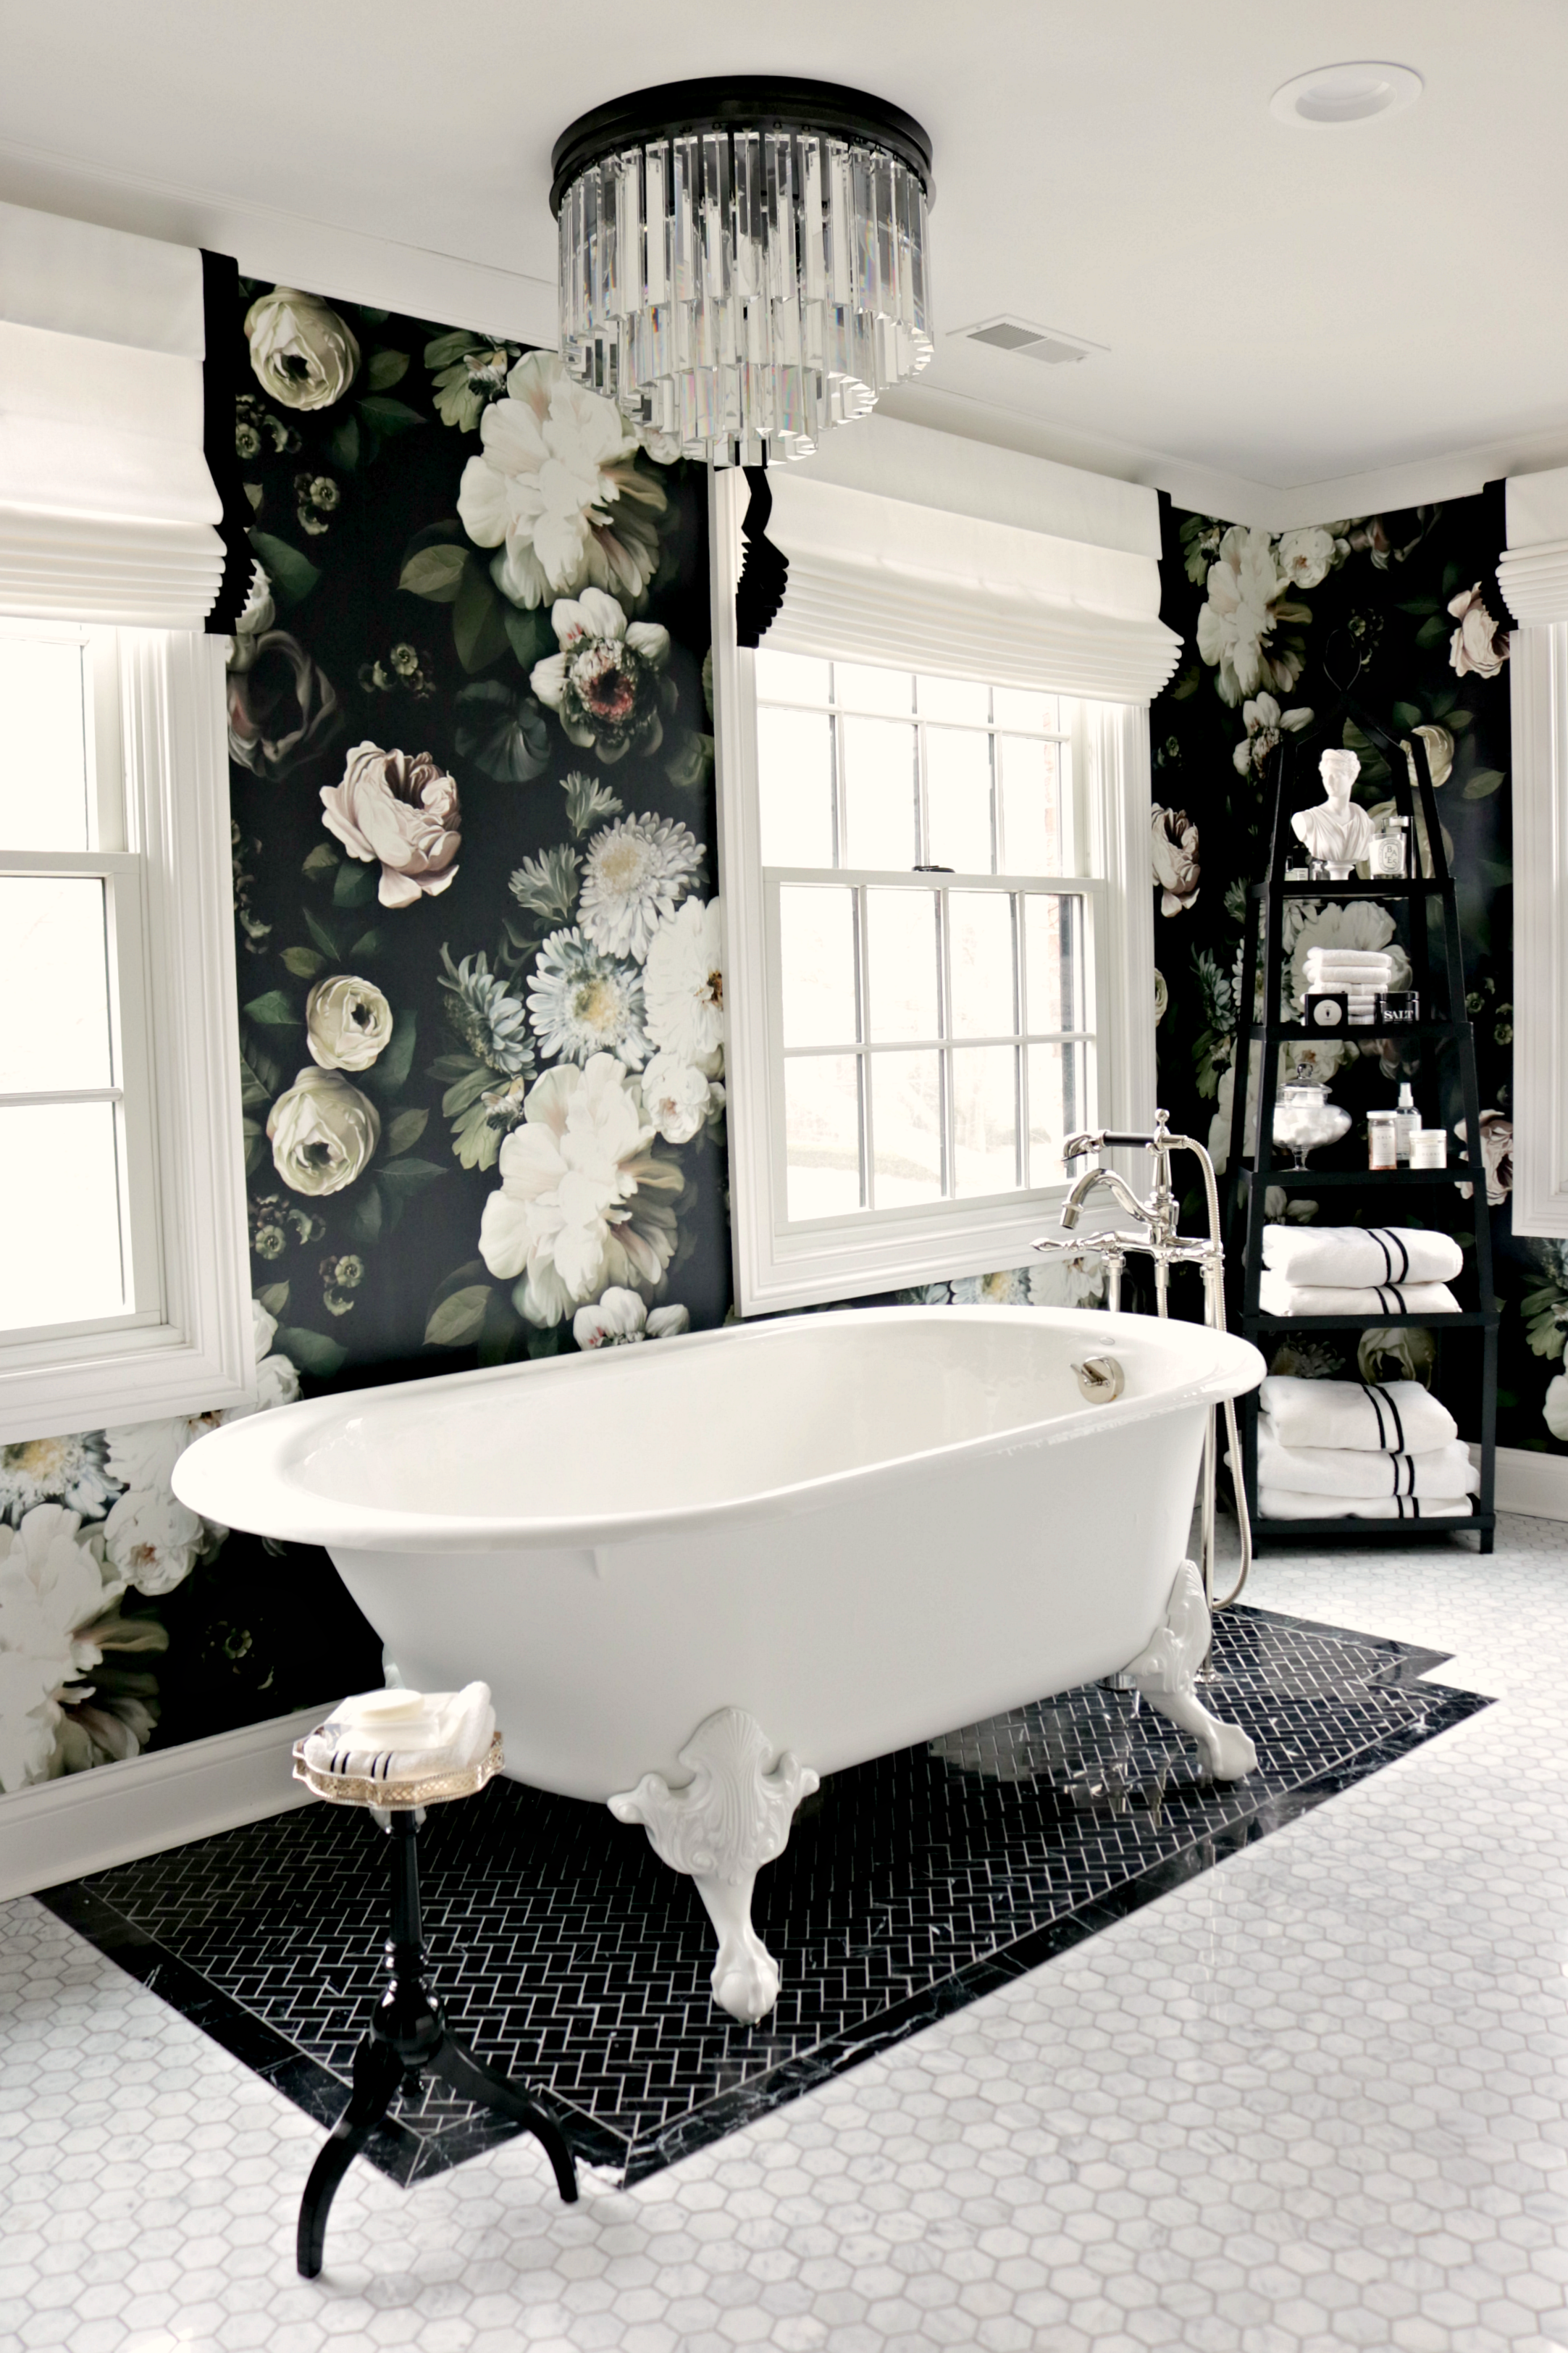 Kelle Dame Interiors Bathroom Design (1).png